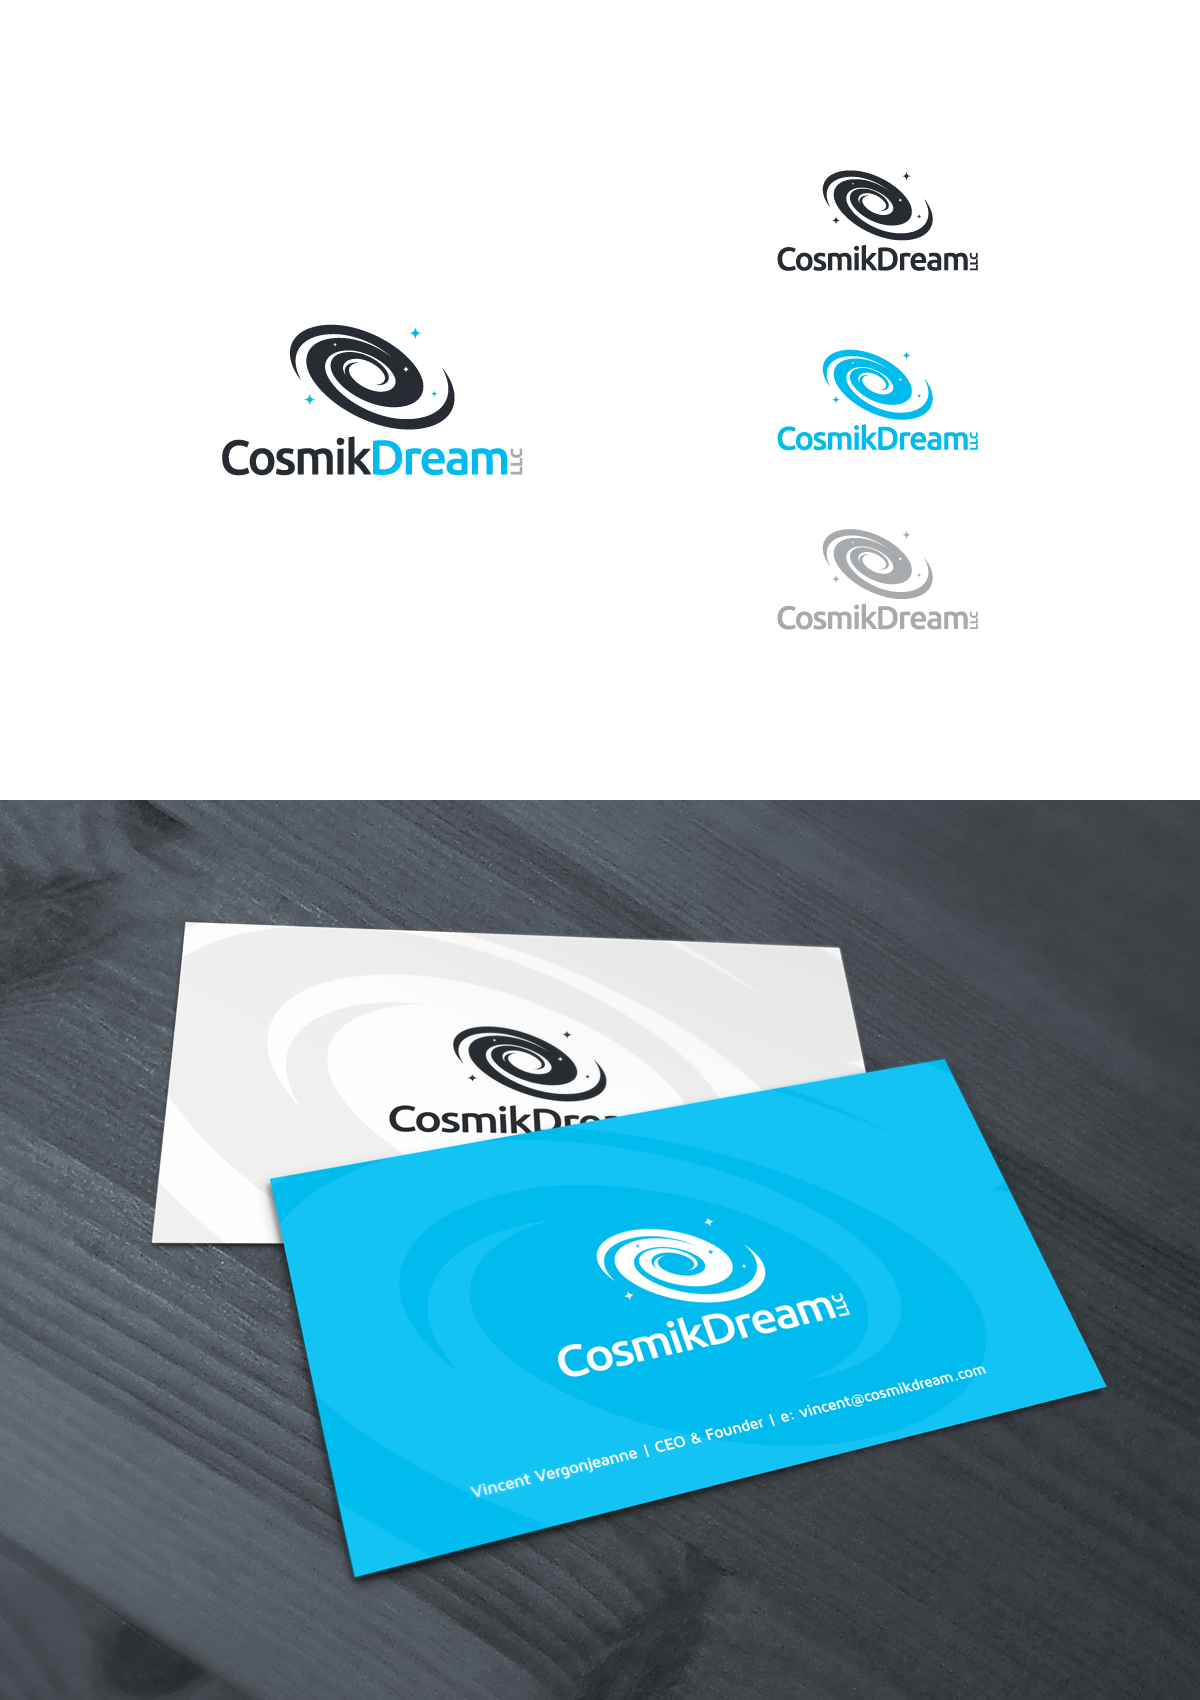 New logo and business card wanted for Cosmik Dream LLC